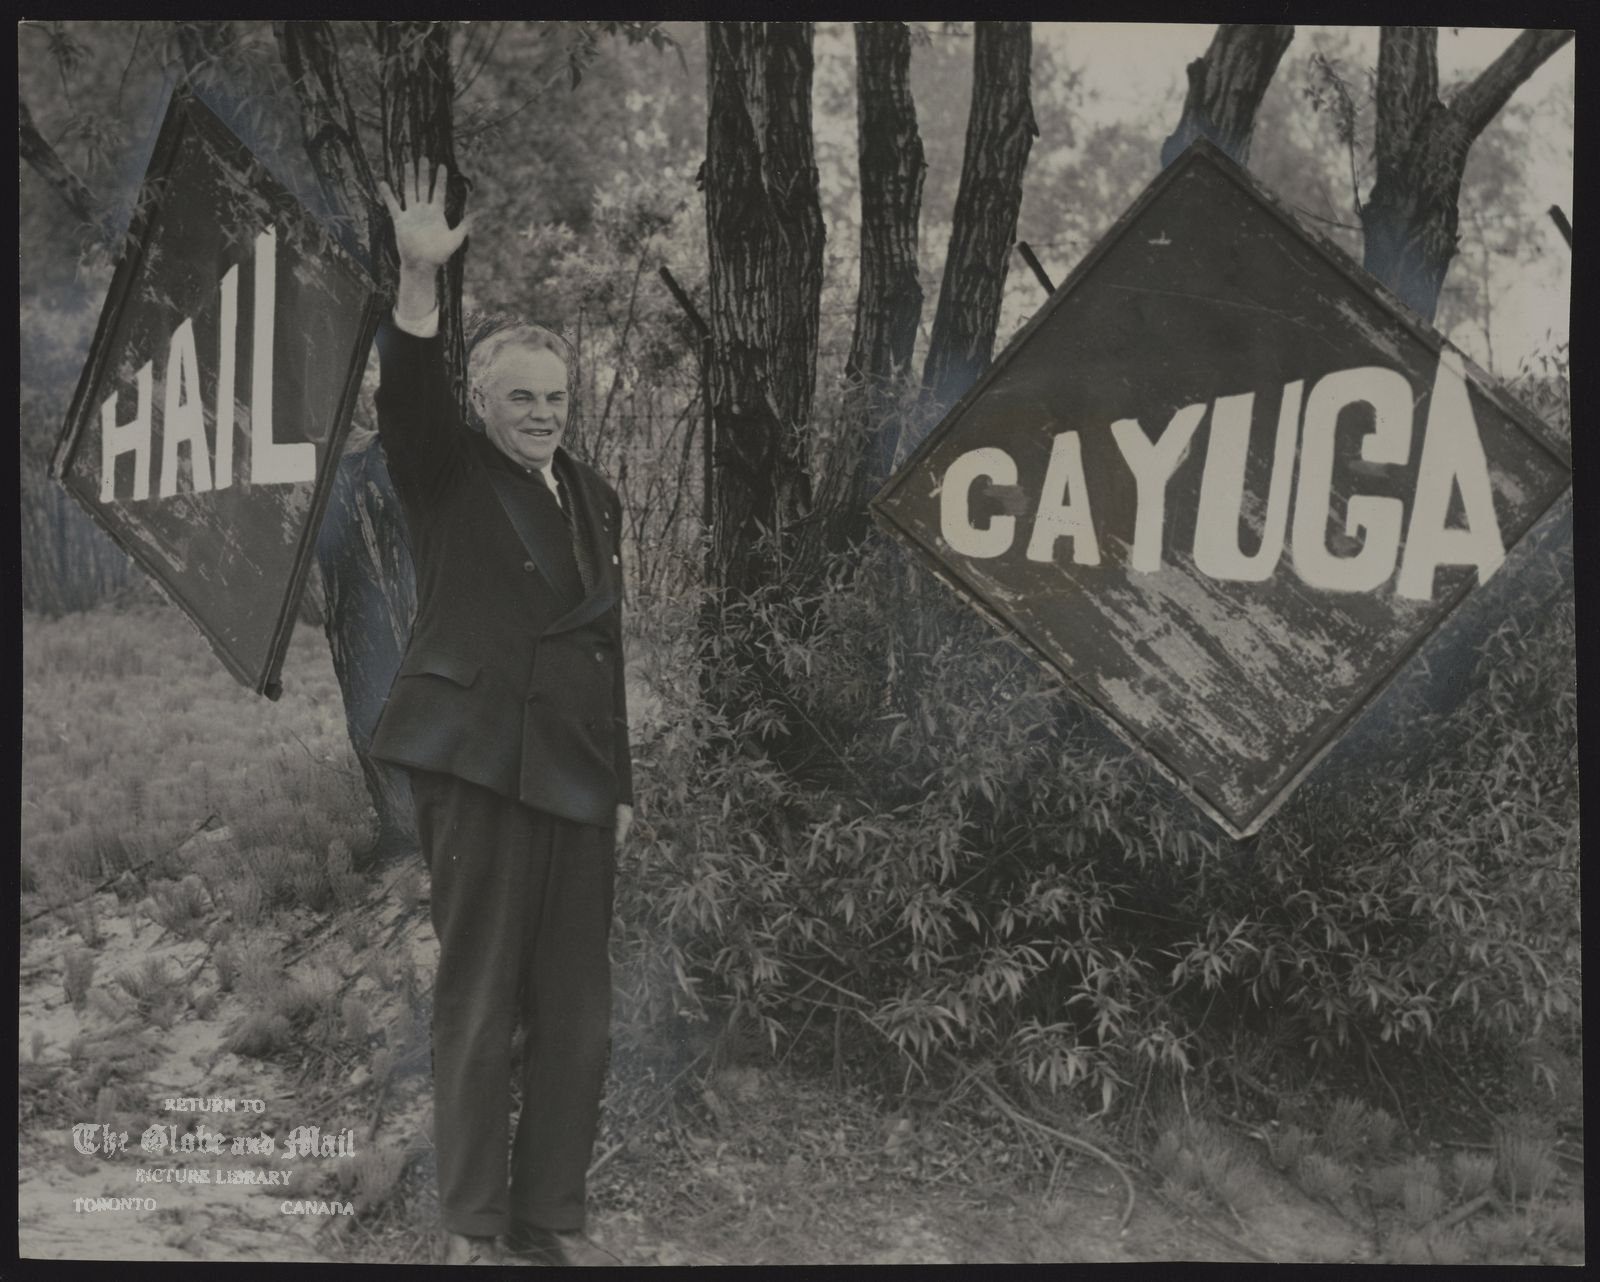 SS CAYUGA STEAMER CAYUGA RETURNS TO SERVICE -- Eastern Gap lighthouse keeper Alf Winslow put up welcome signs for the Cayuga. In 1908 Winslow sold popcorn and peanuts aboard the steamer. He had the lighthouse decked in flage for the event.